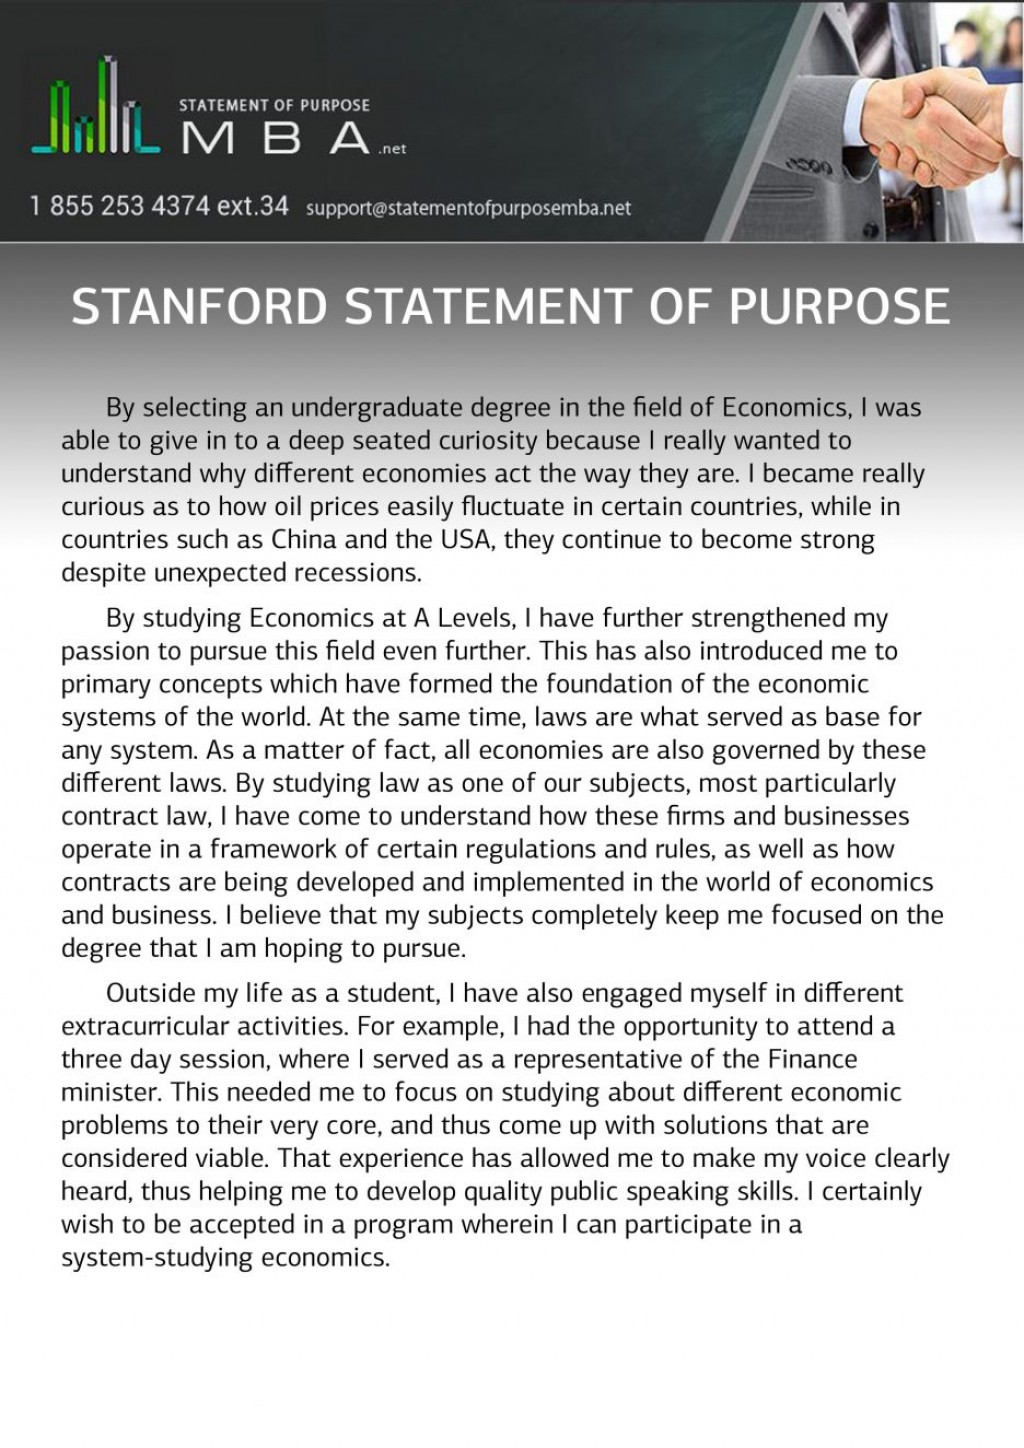 011 Stanford Essays Roommate Statement Purpose Sample Essay Accepted Examples That Worked Tips Example Prompt College Confidential Of Advice Reddit Facebook Stunning Ocean Large